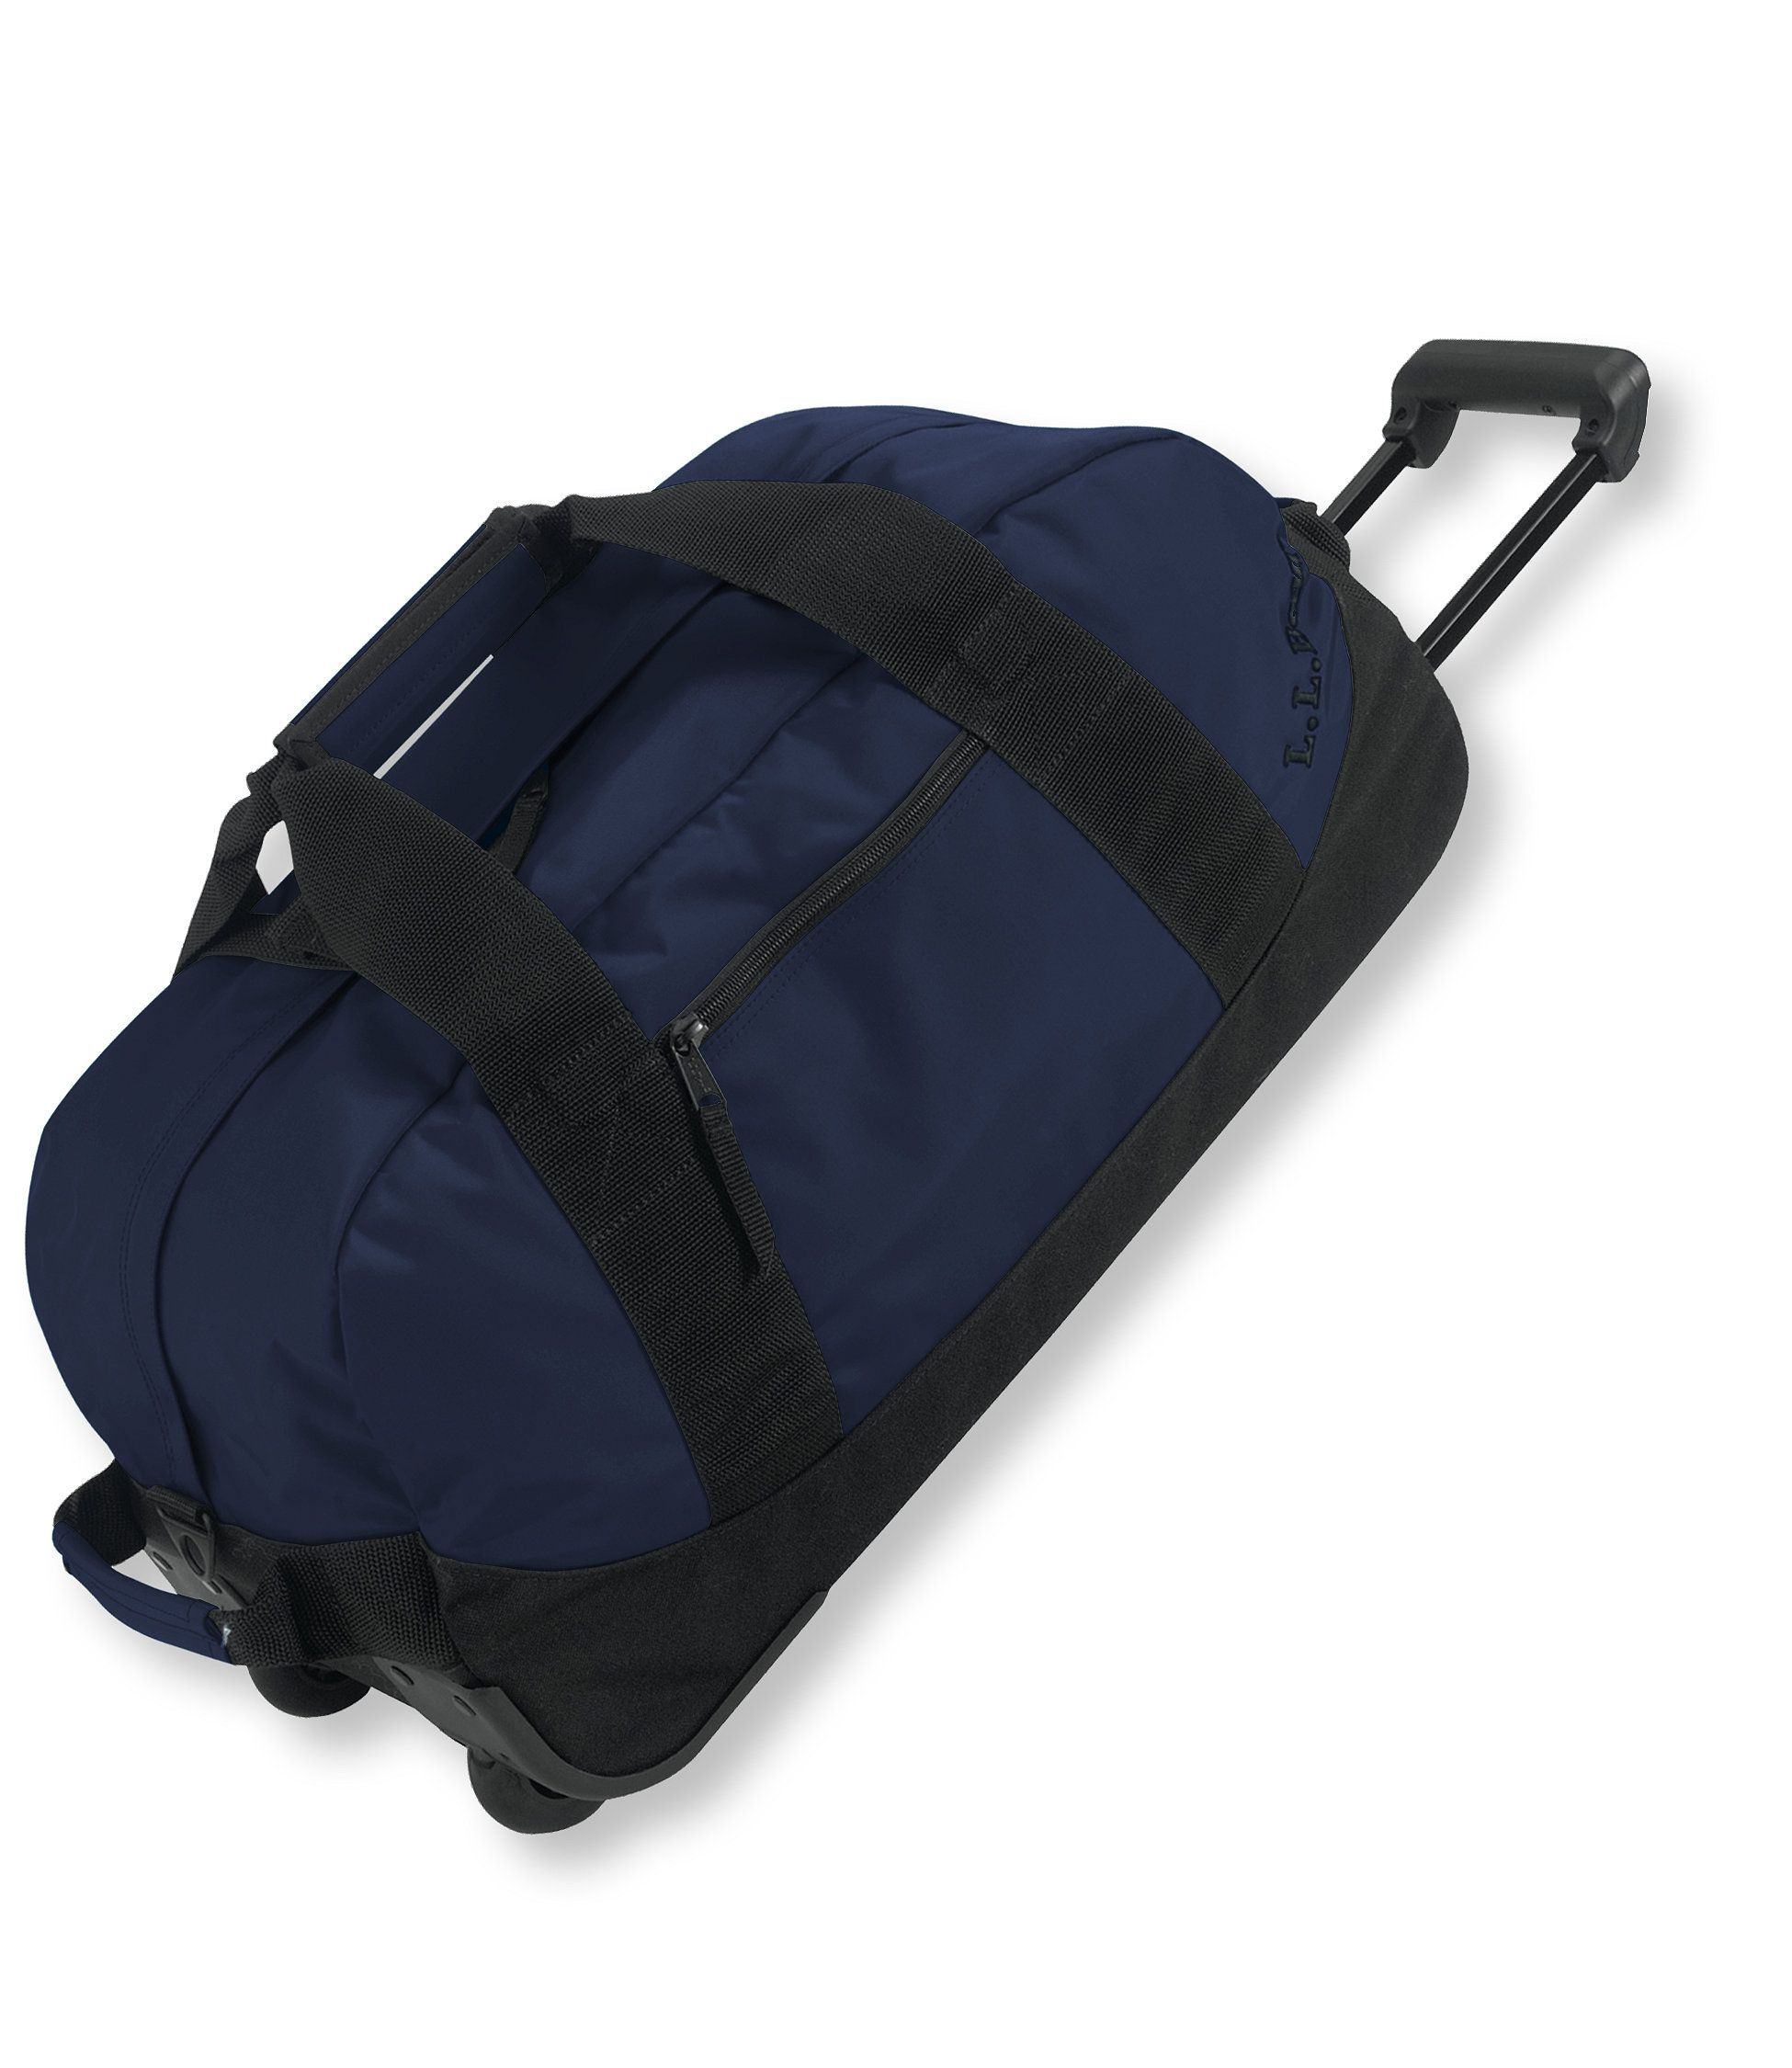 81d424353 Rolling Adventure Duffle, Medium | Luggage | Rolling duffle bag, Bags,  Travel